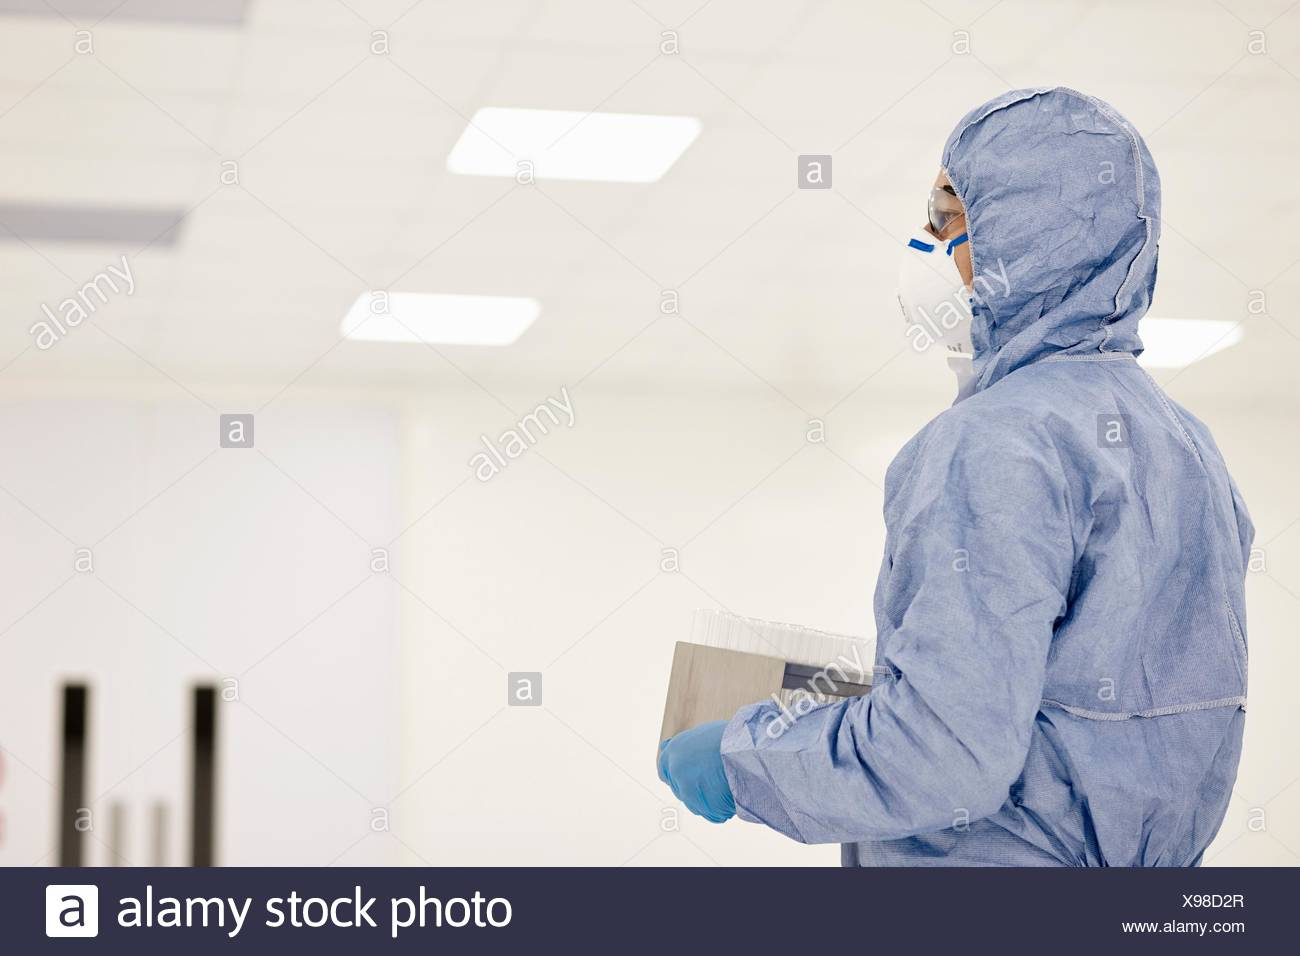 Scientist carrying tray of test tubes in laboratory Stock Photo